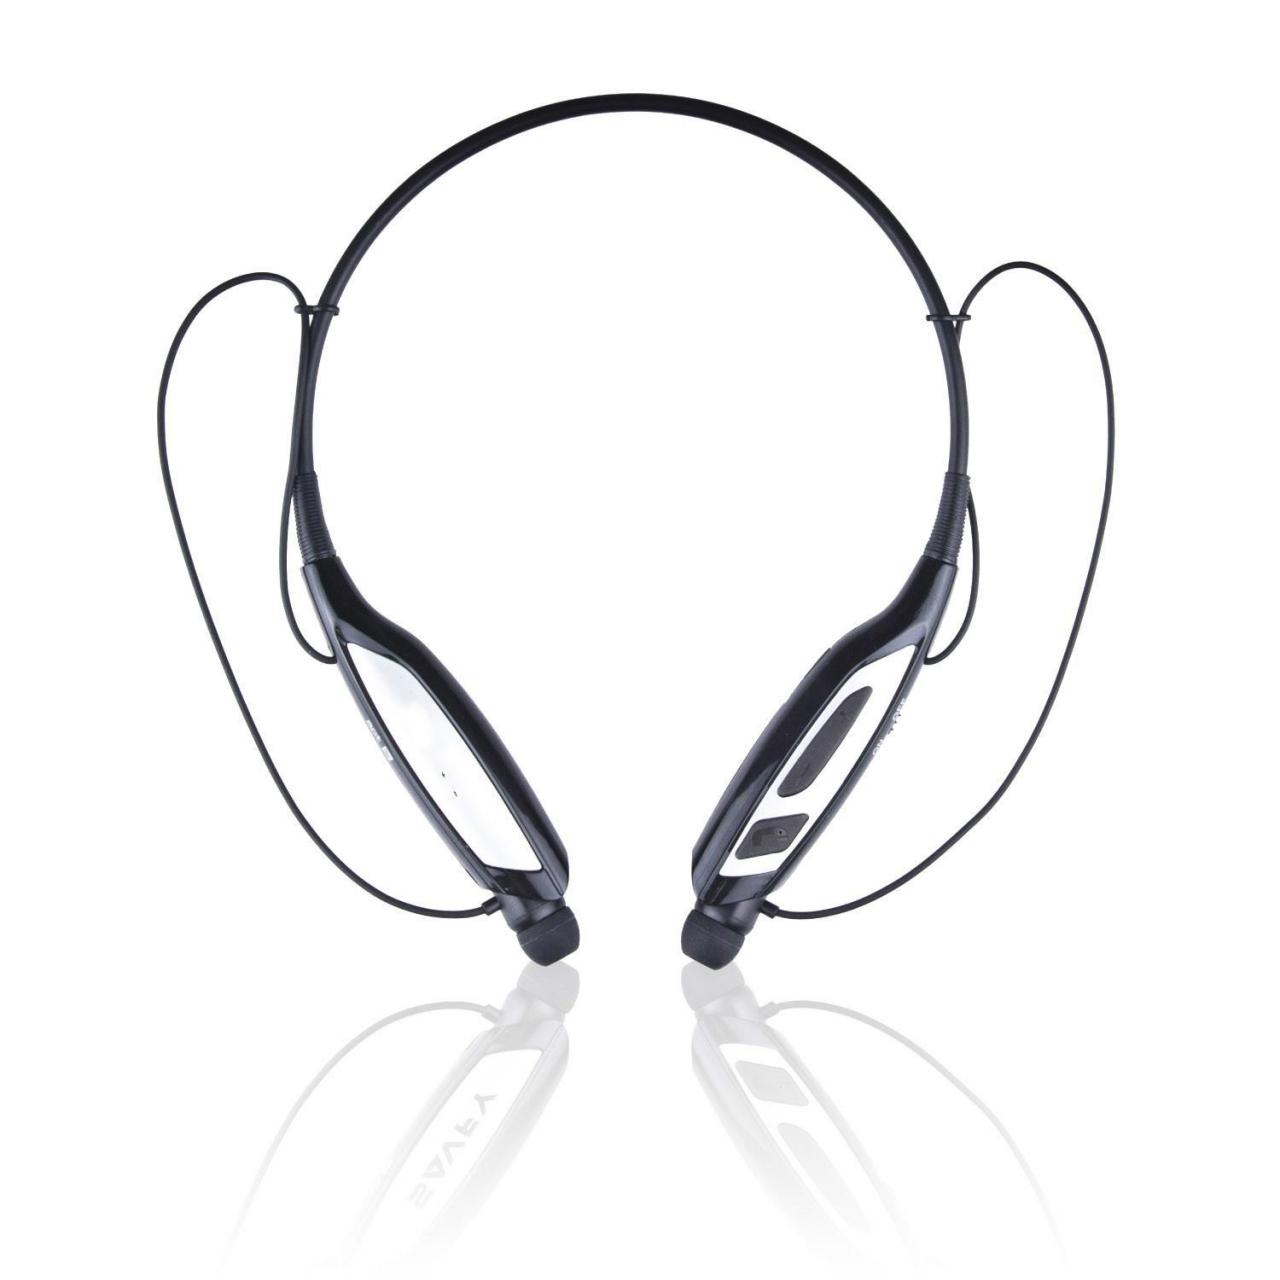 Wireless Stereo Sport Bluetooth 3.0 Headset Neck Earphone For Phone Media Device Manufactures